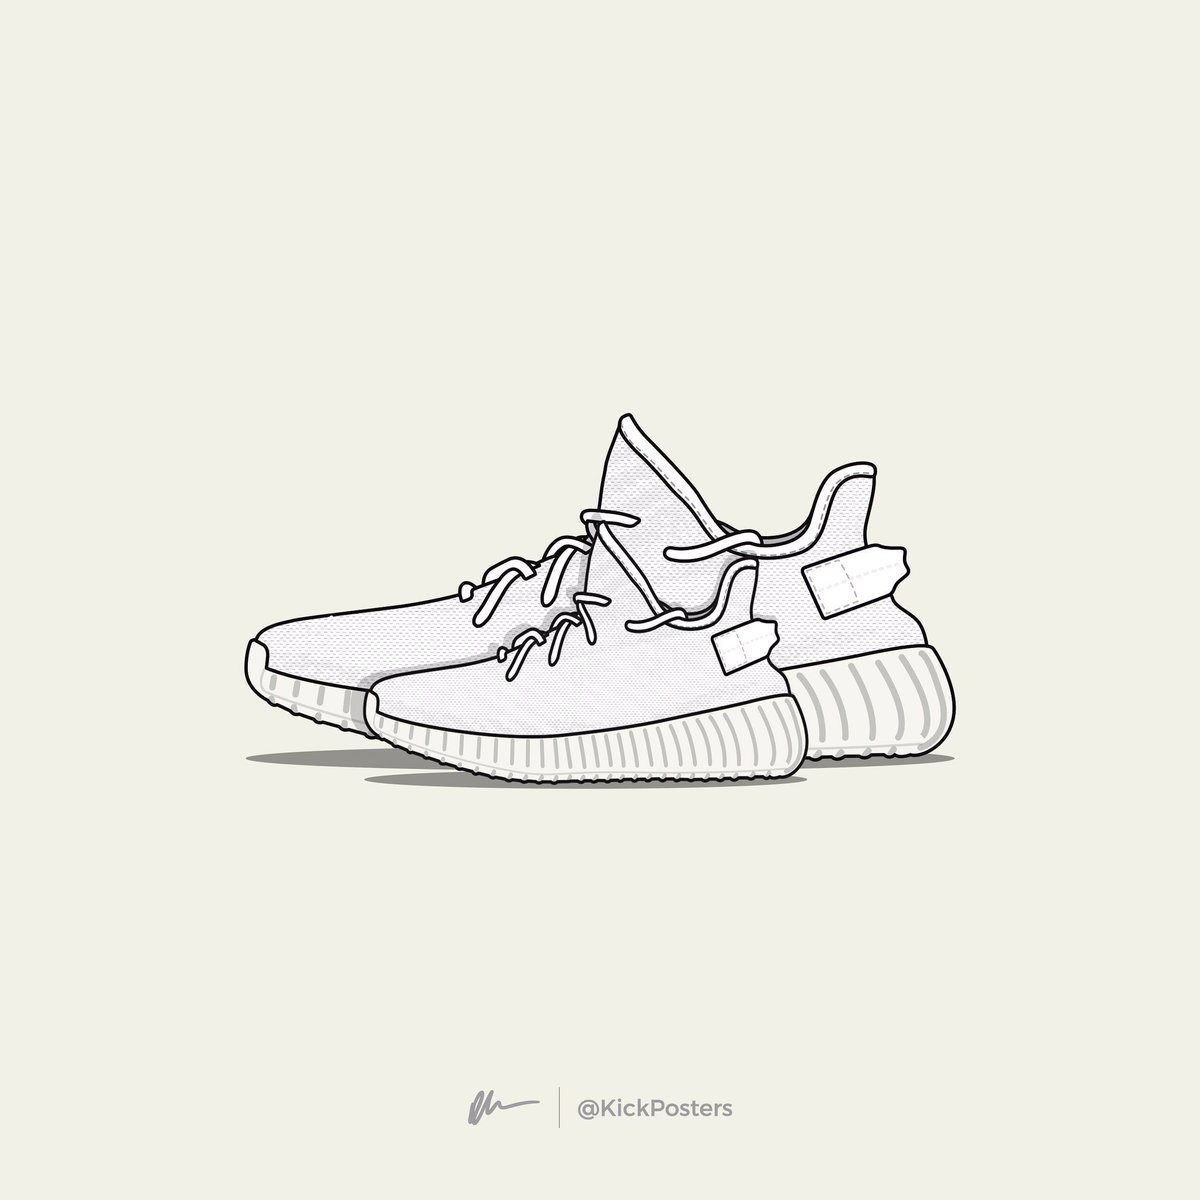 The Sole Supplier On Twitter Raffle Guide Now Live For